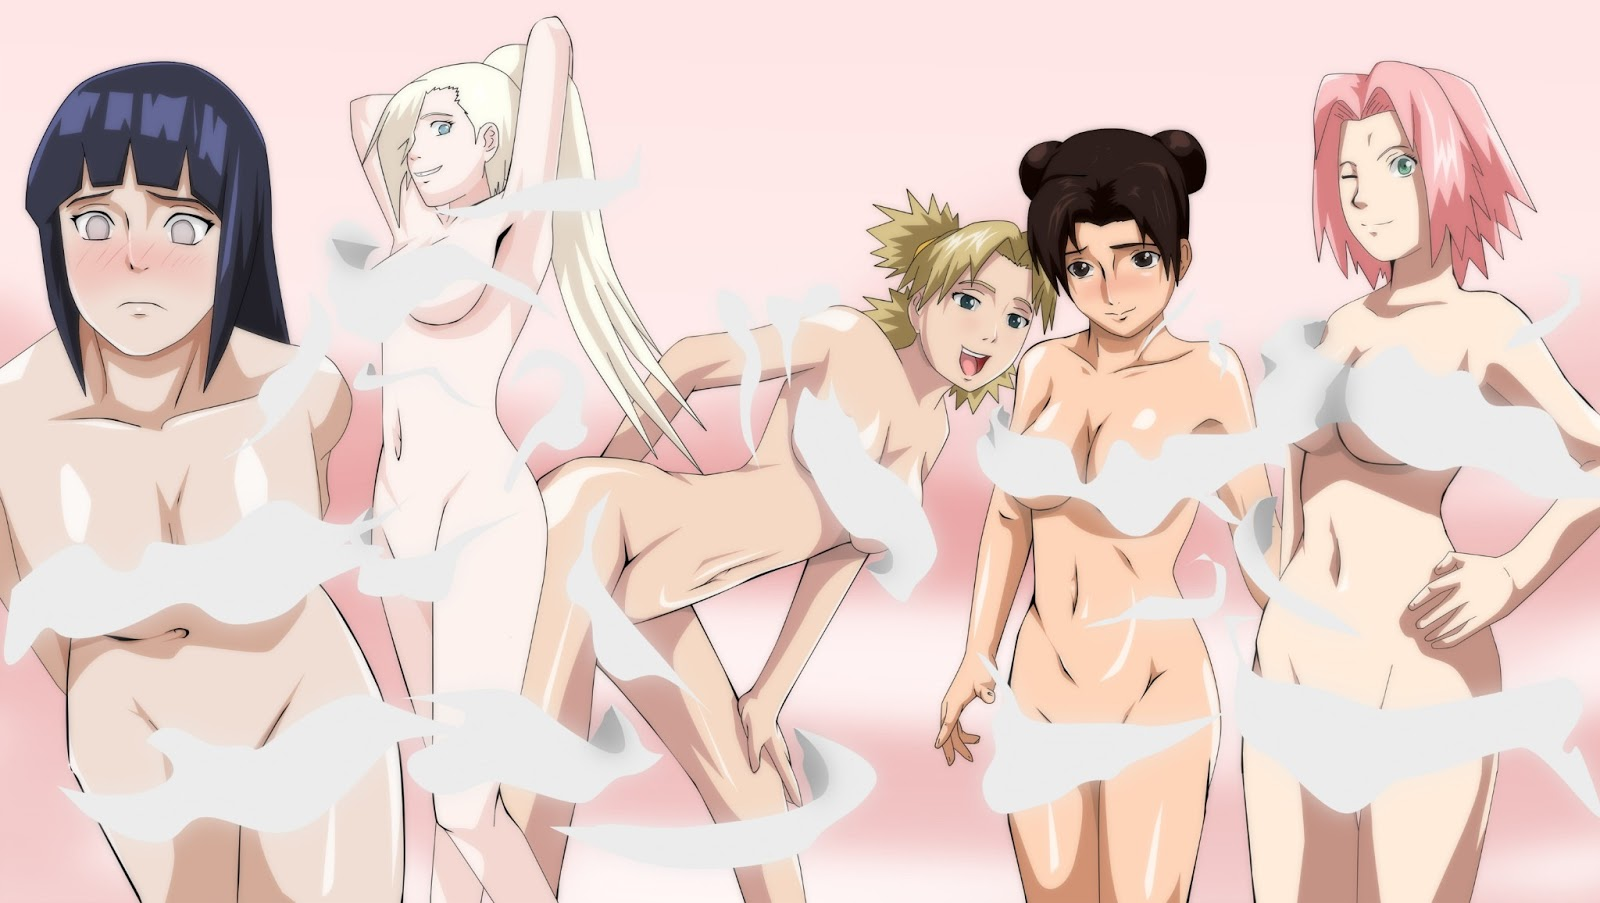 sexy hot Sakura naruto girls